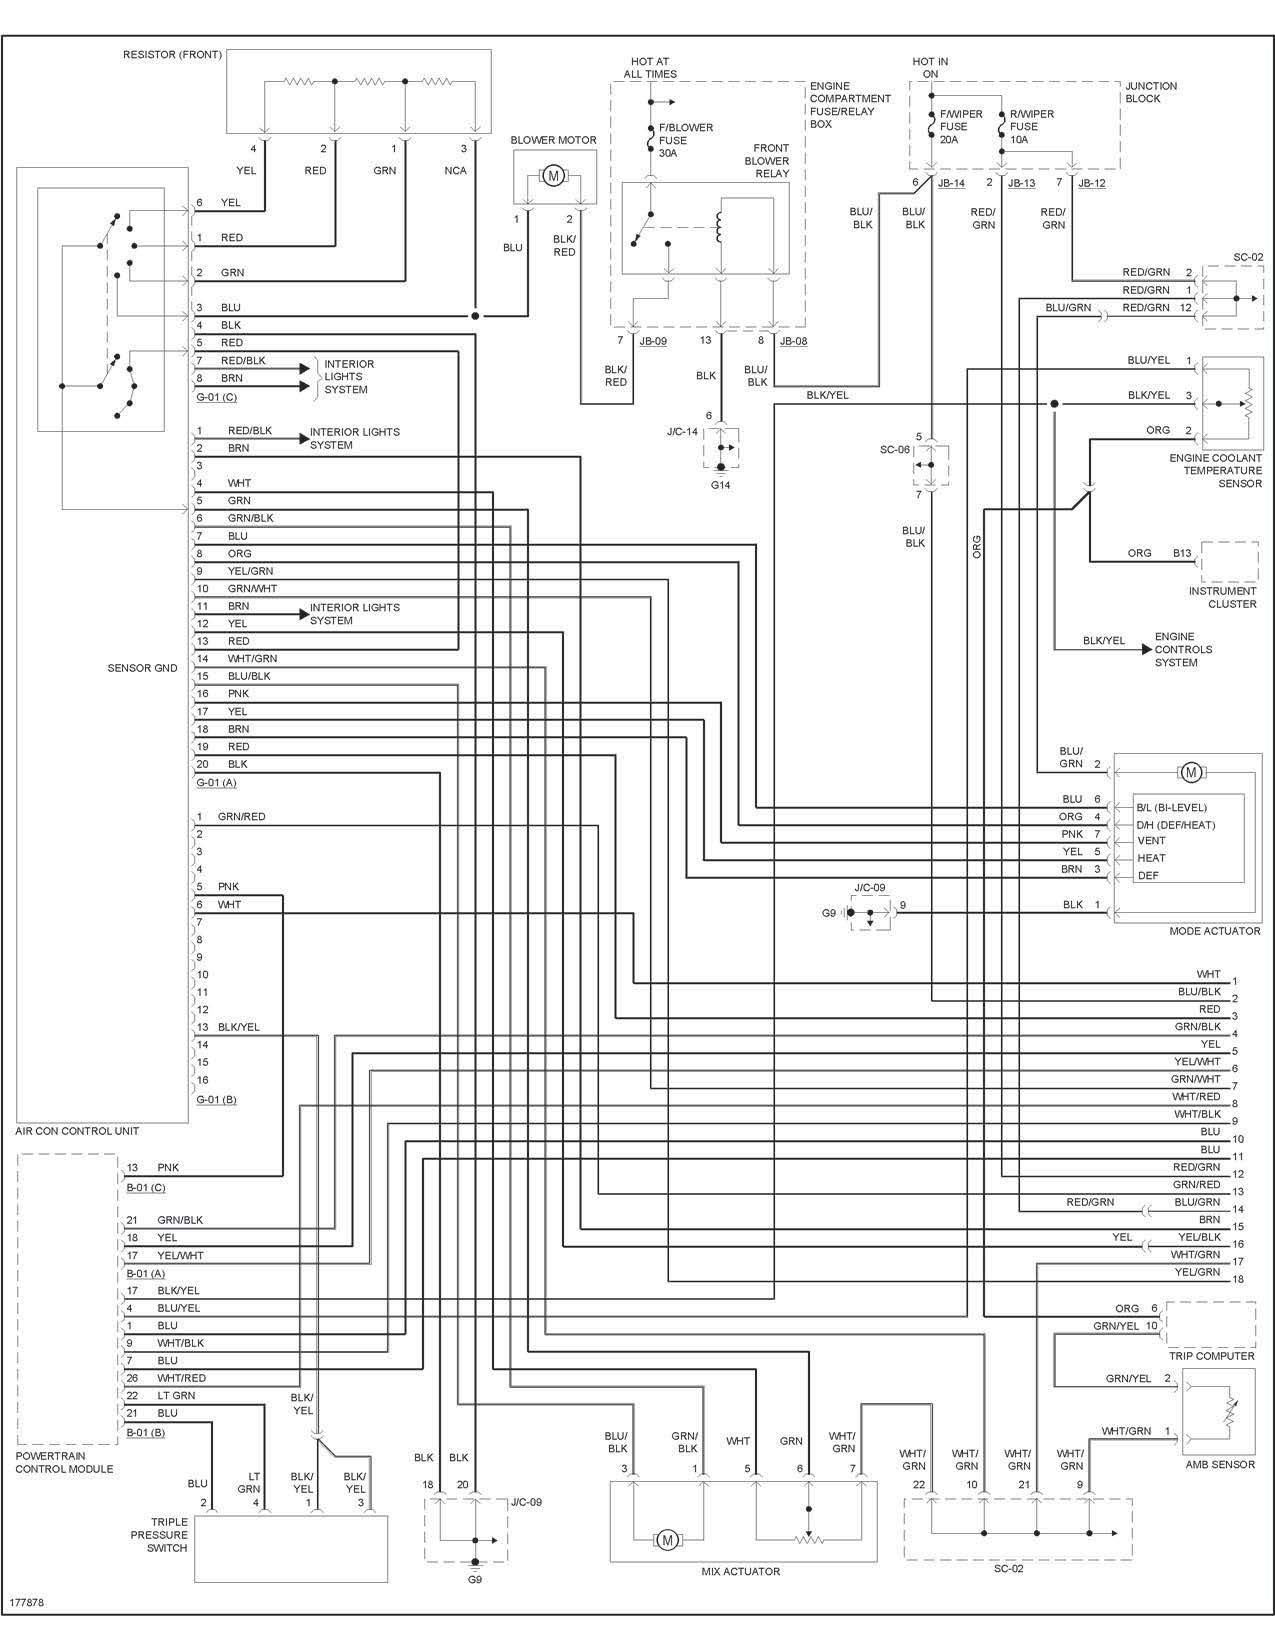 Diagram Of the Chrysler 3,8 Litre Engine Dohc 16v Kia Motor Diagram Full Hd Version Motor Diagram Of Diagram Of the Chrysler 3,8 Litre Engine